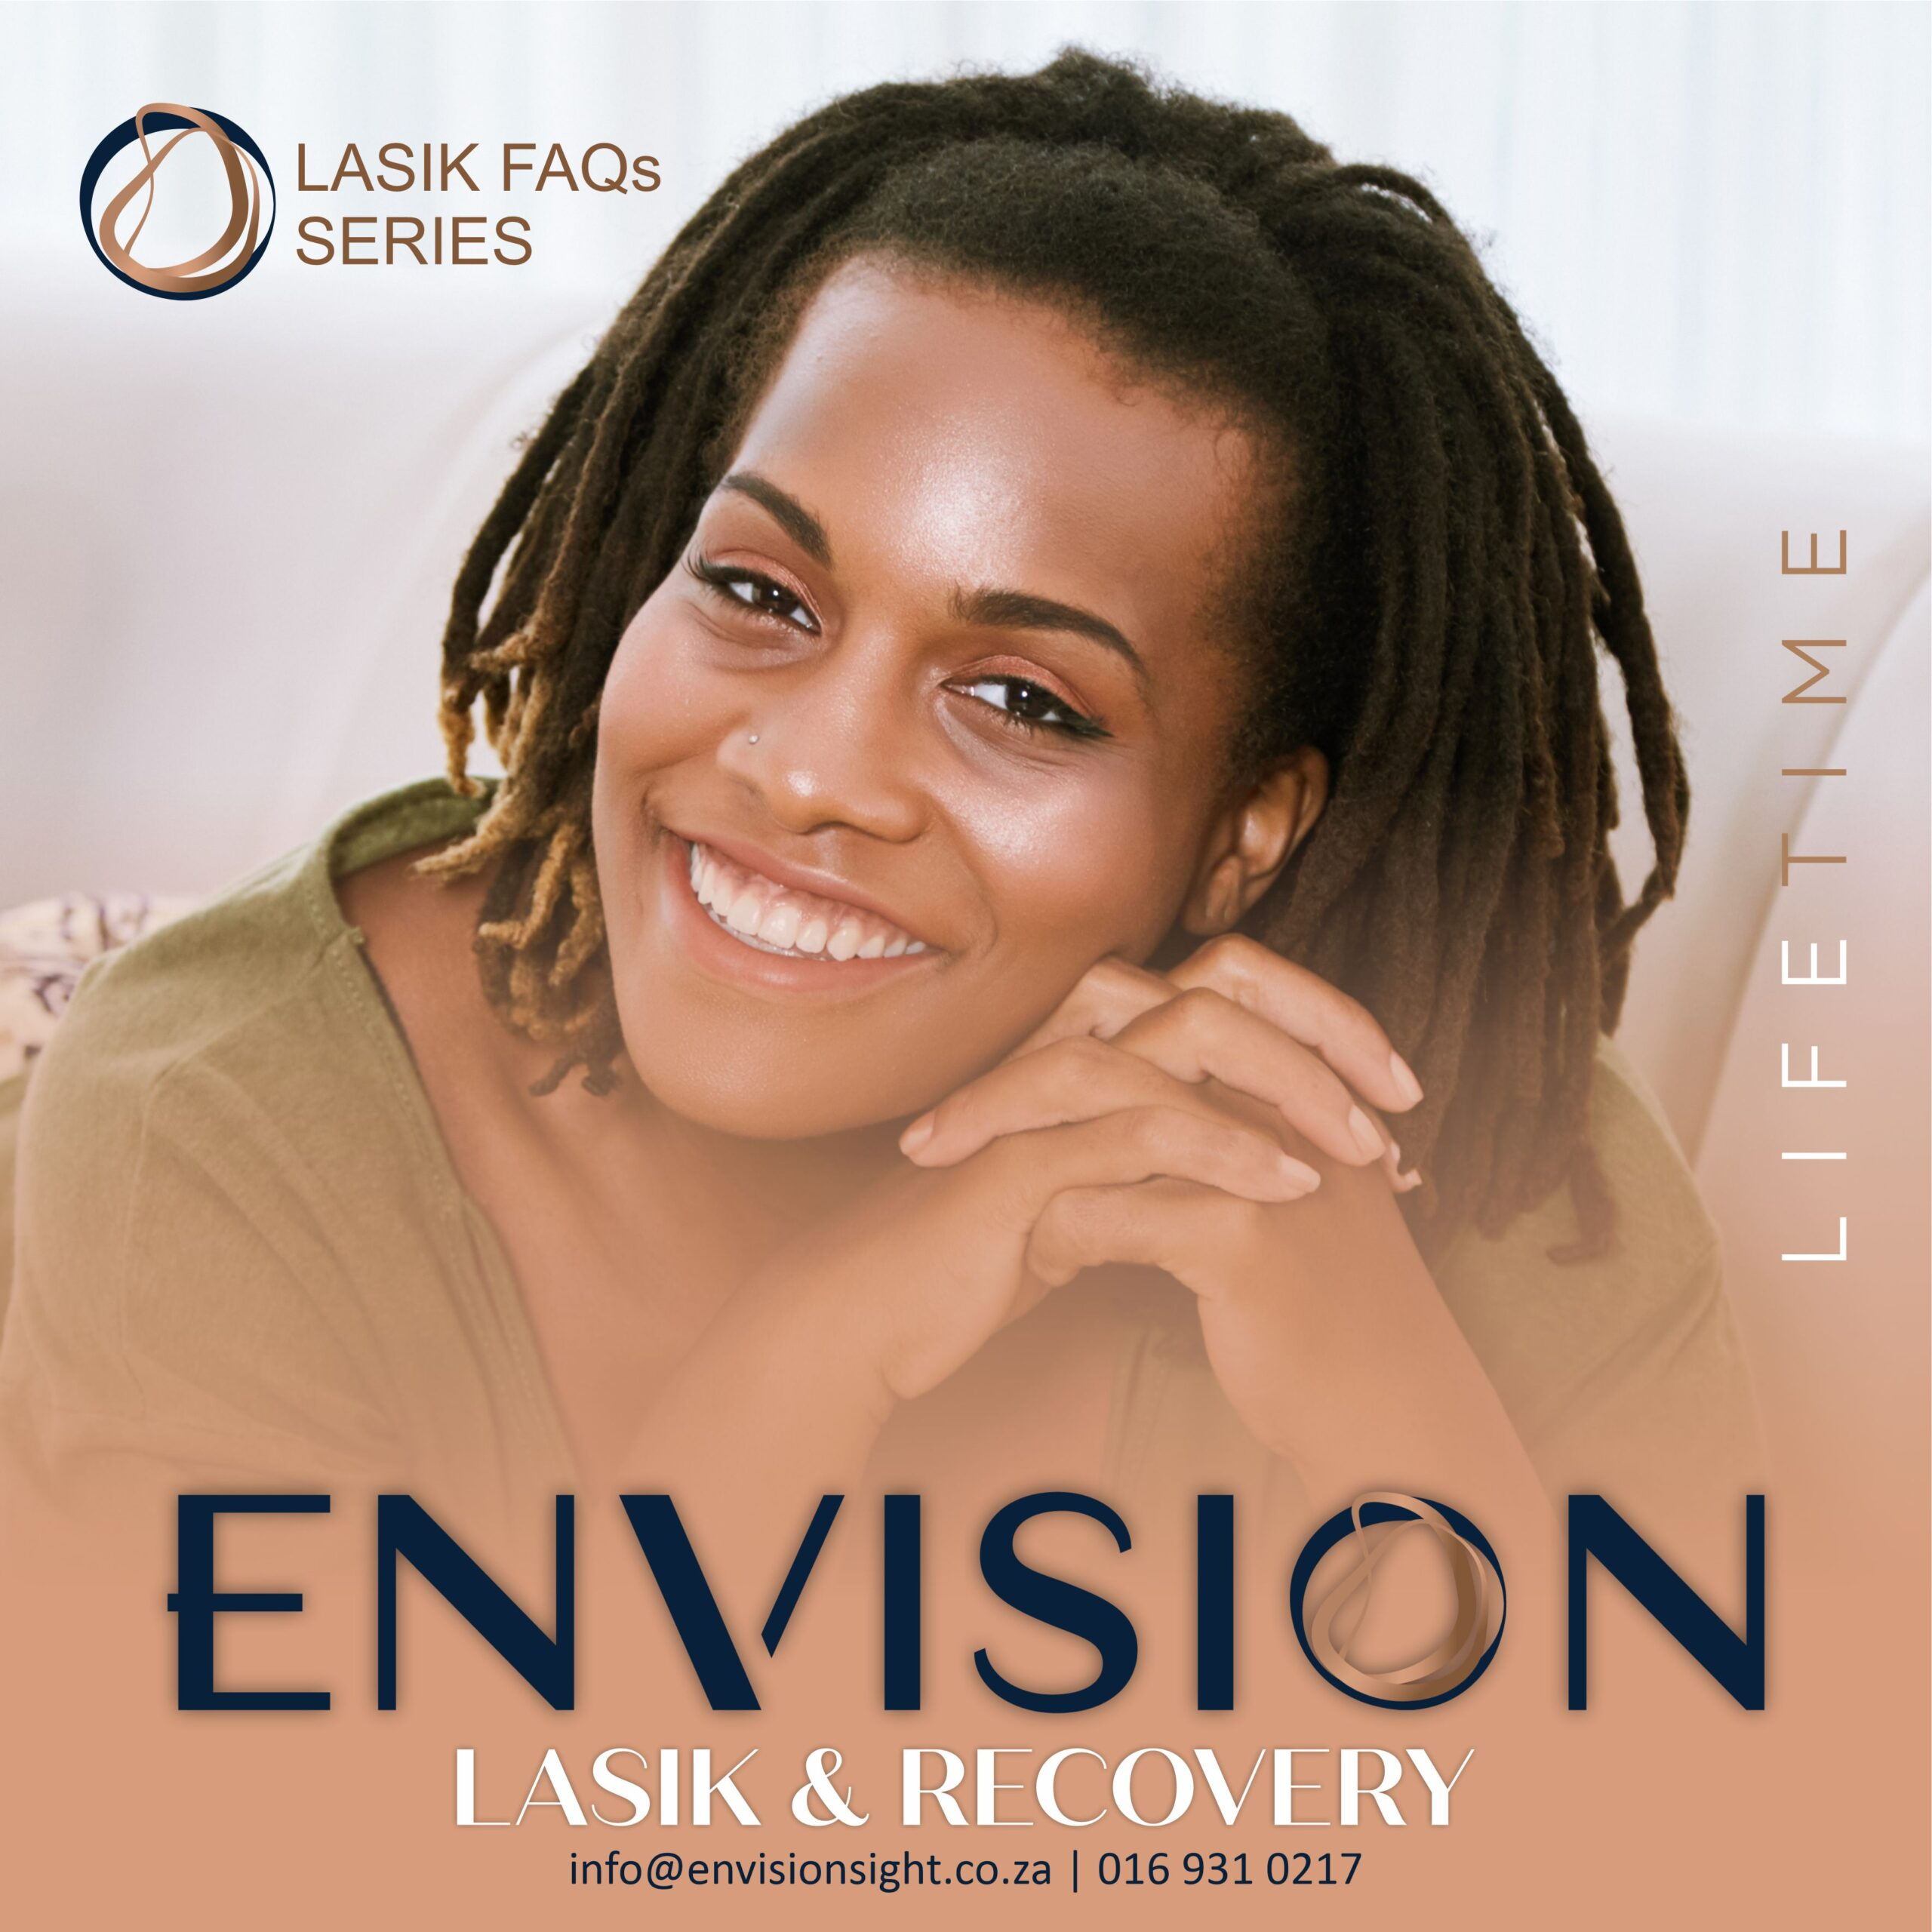 How long will it take to recover after LASIK?